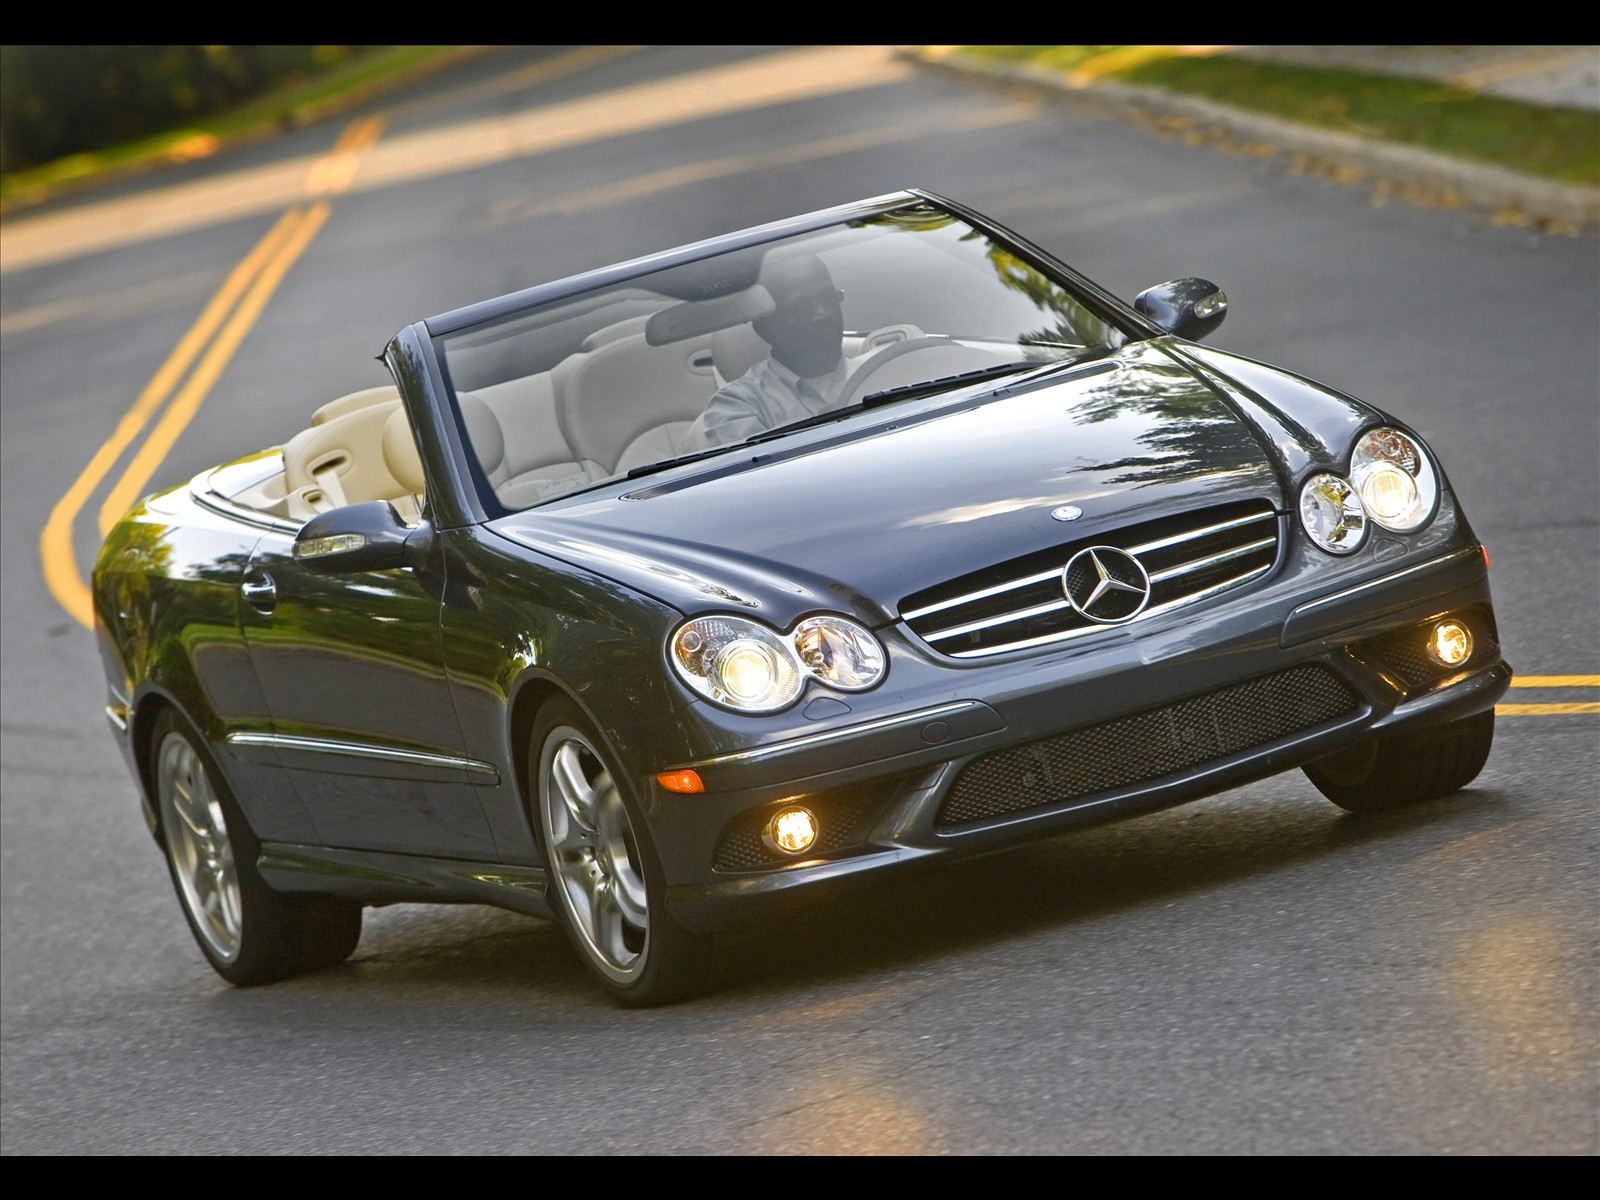 Hight Quality Cars: Mercedes-Benz CLK 550 - Sports and chic